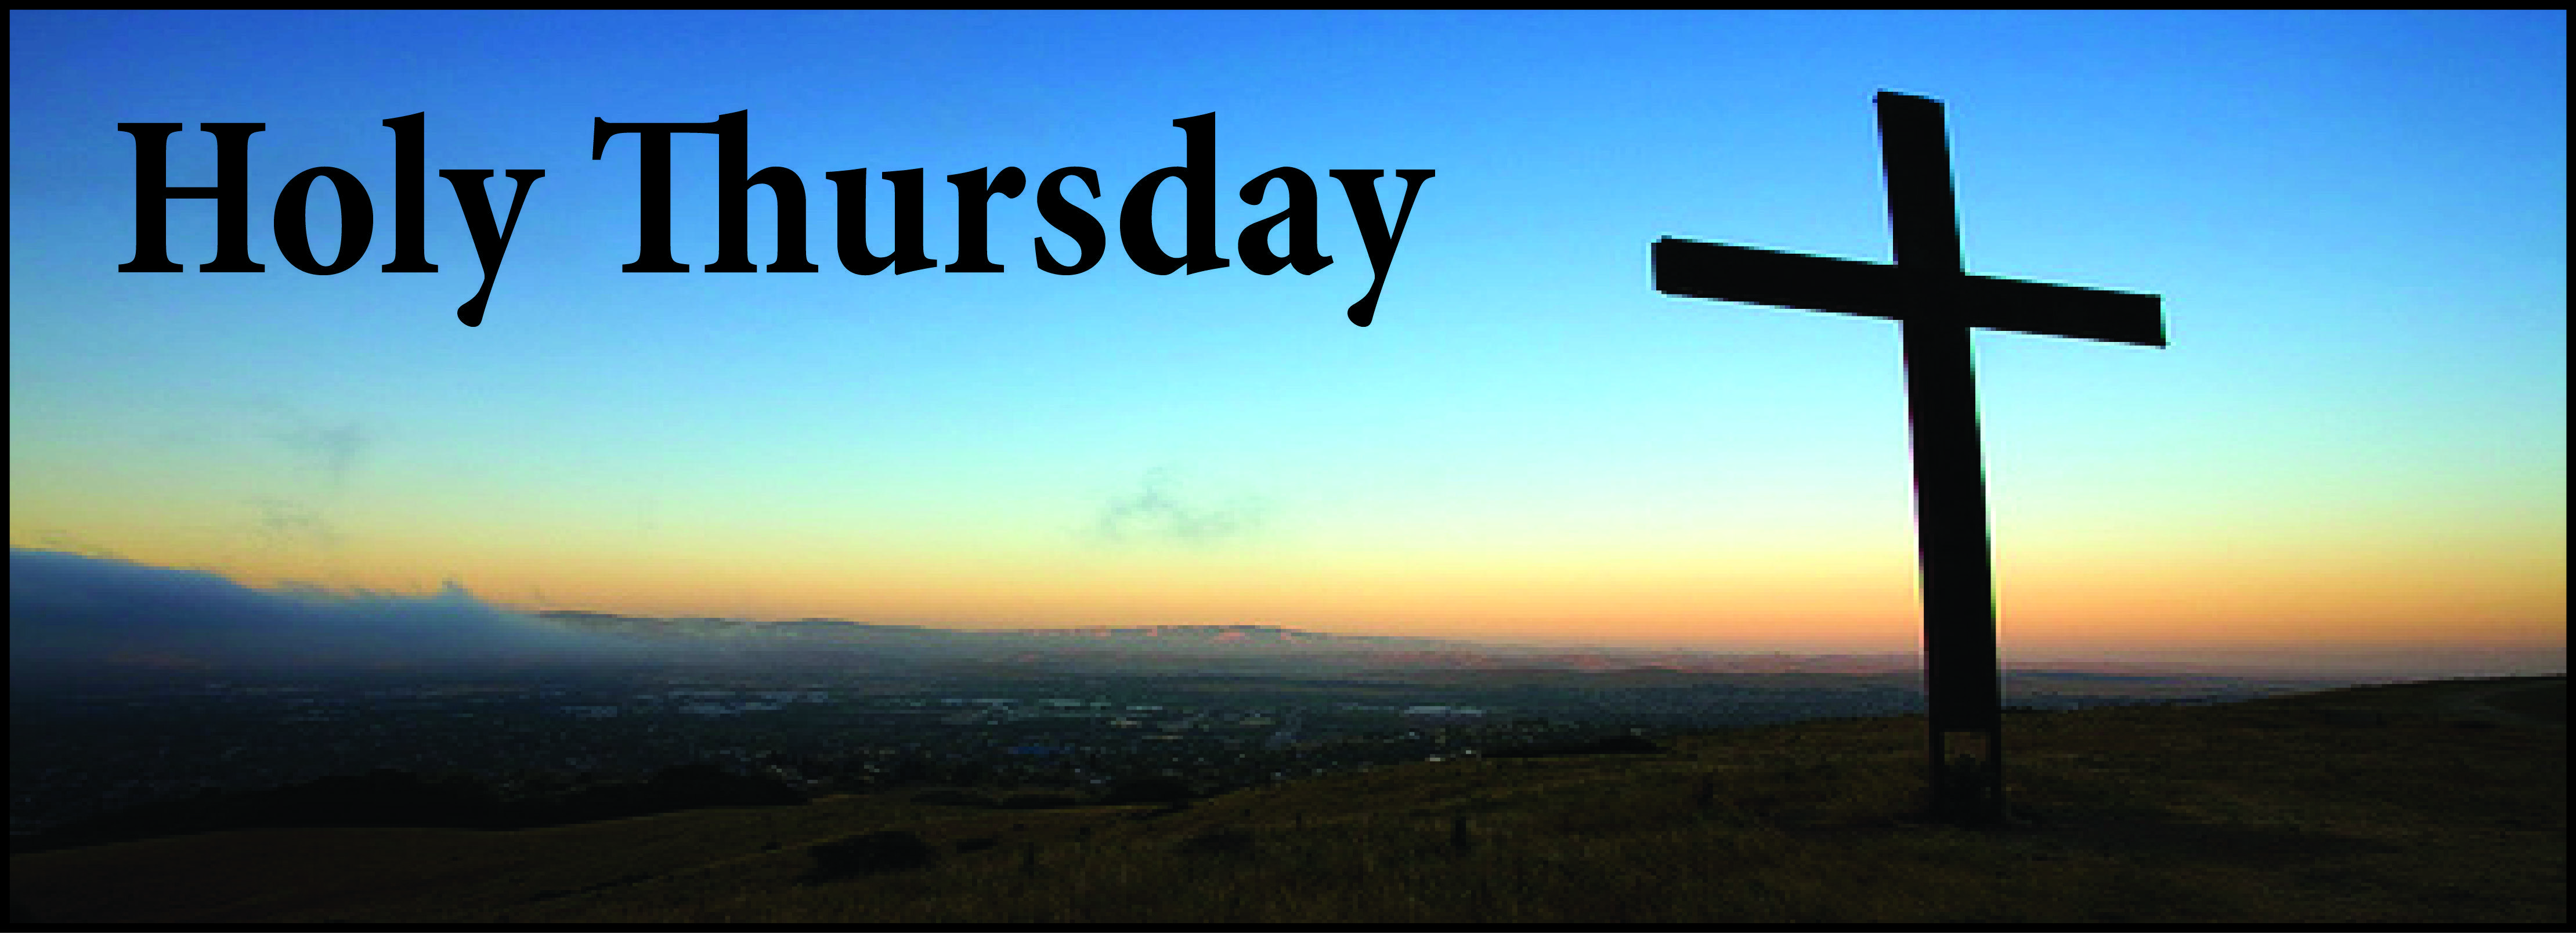 40 Adorabl Holy Thursday Wish Pictures And Photos